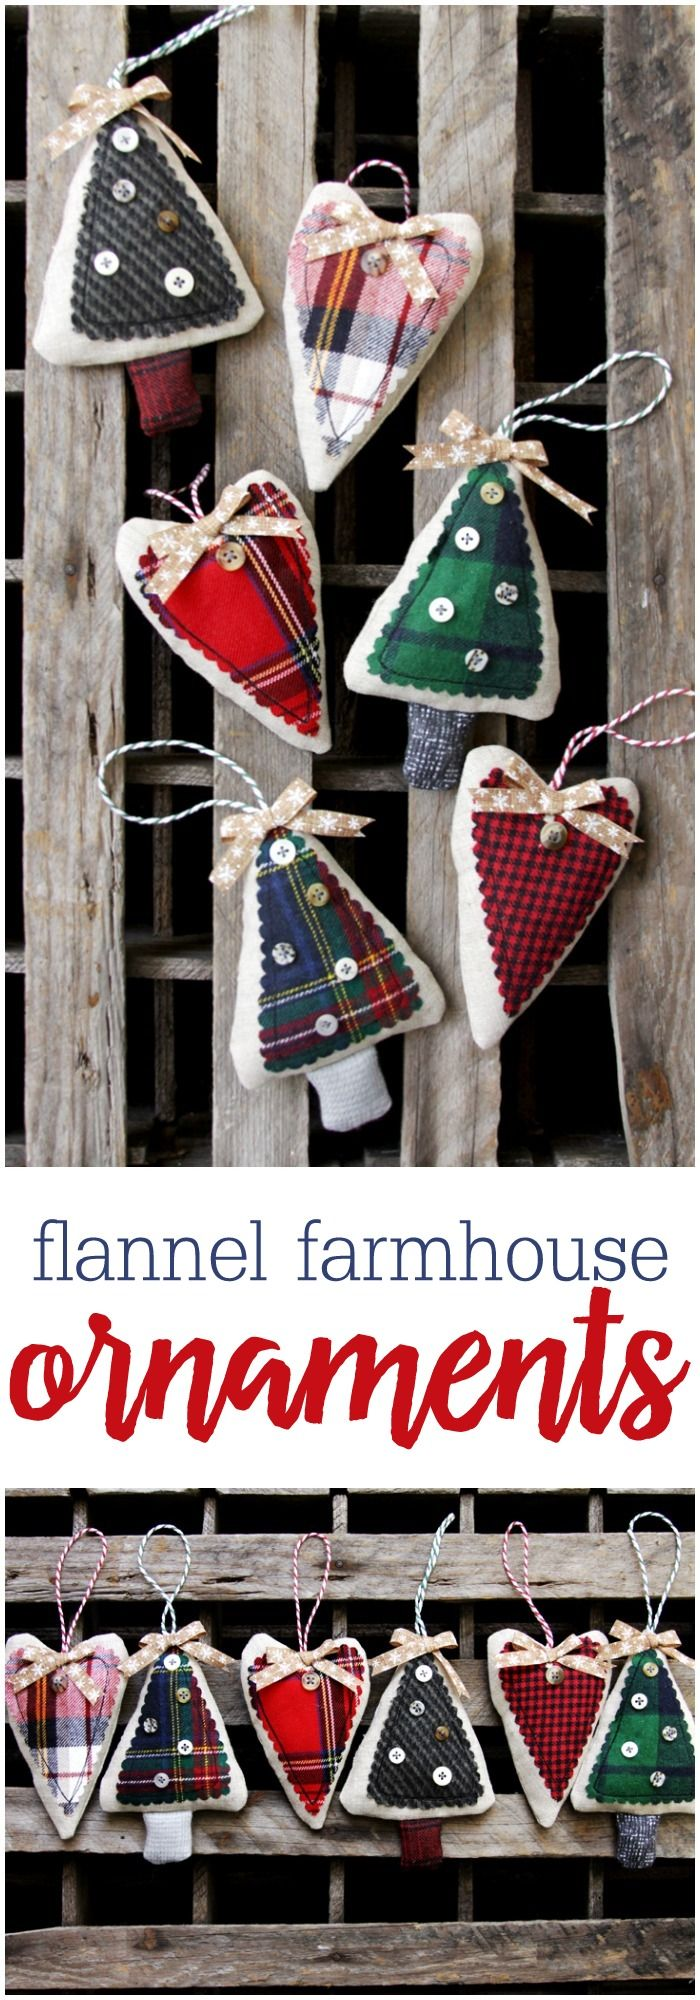 These Cute Simple Flannel Farmhouse Ornaments Sew Up So Fast So They're  Great To